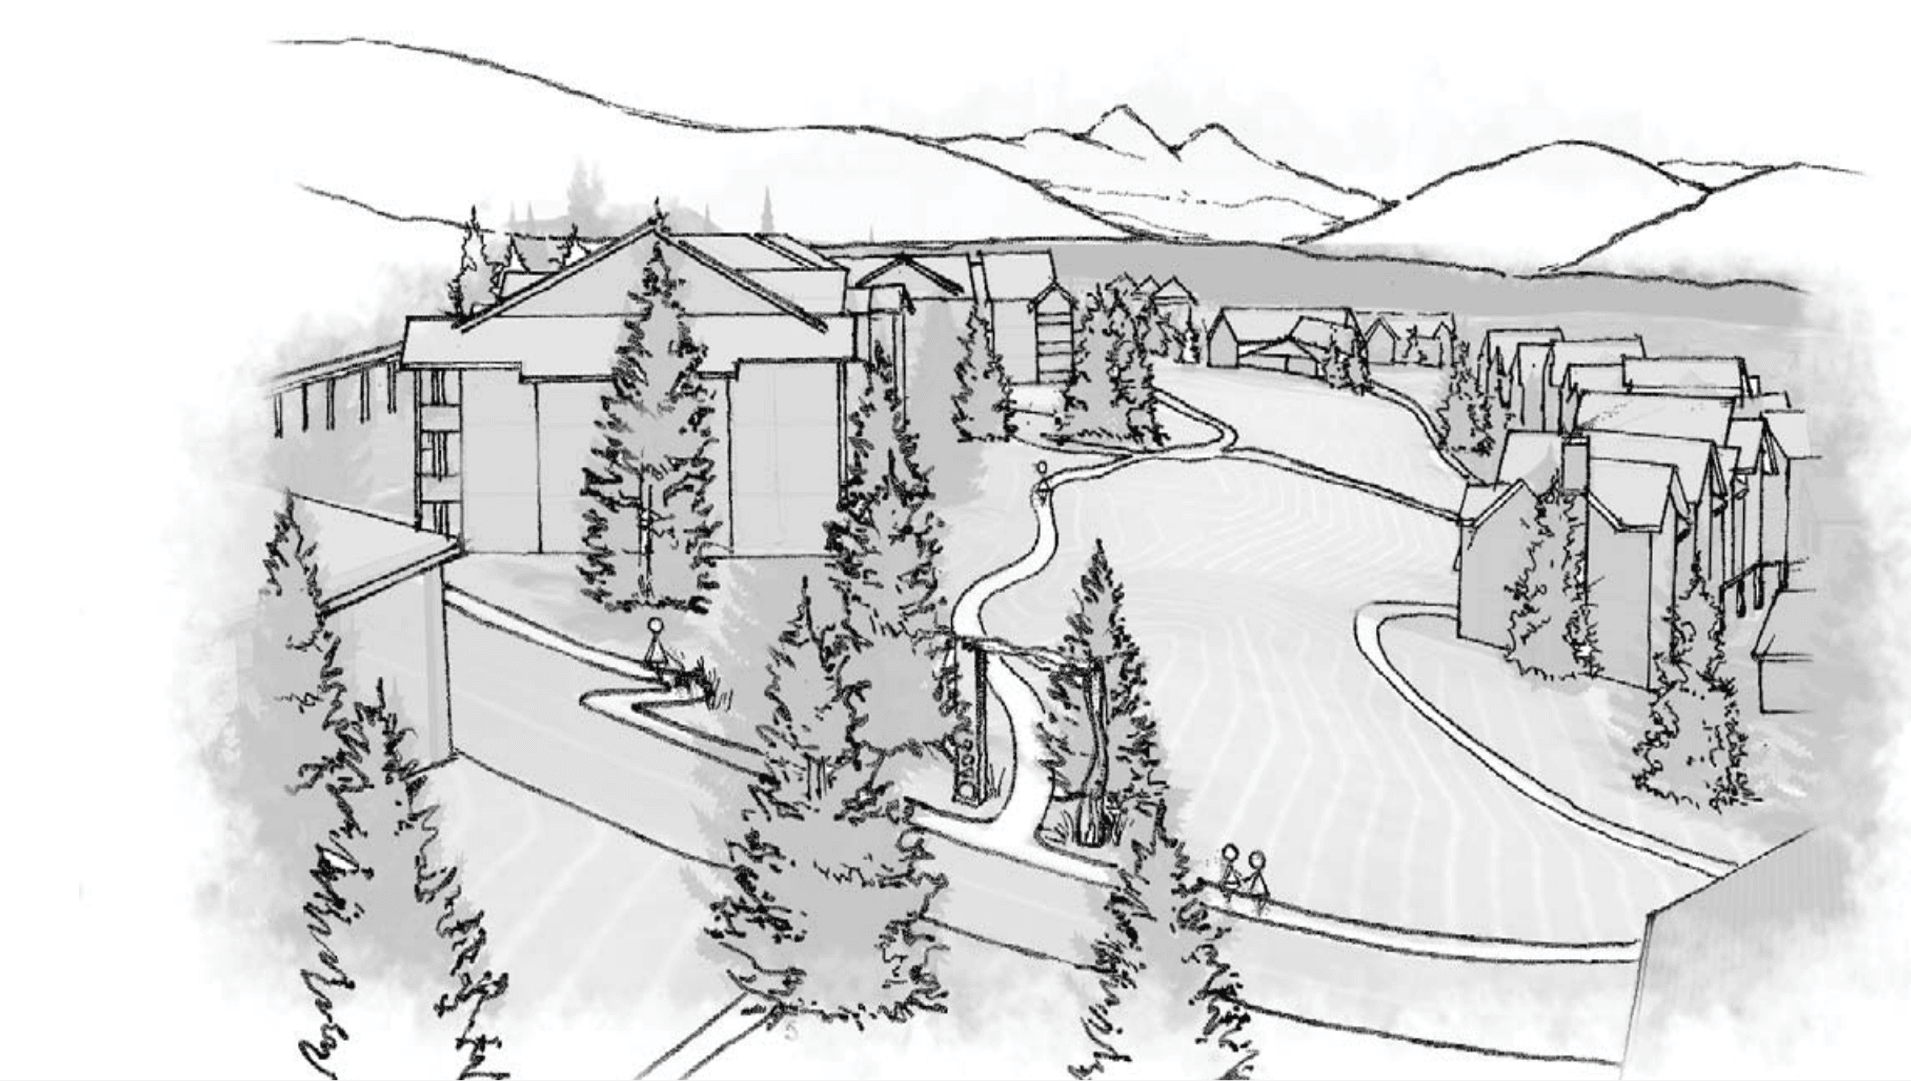 Sketch of a workforce housing development at Lake Hill.